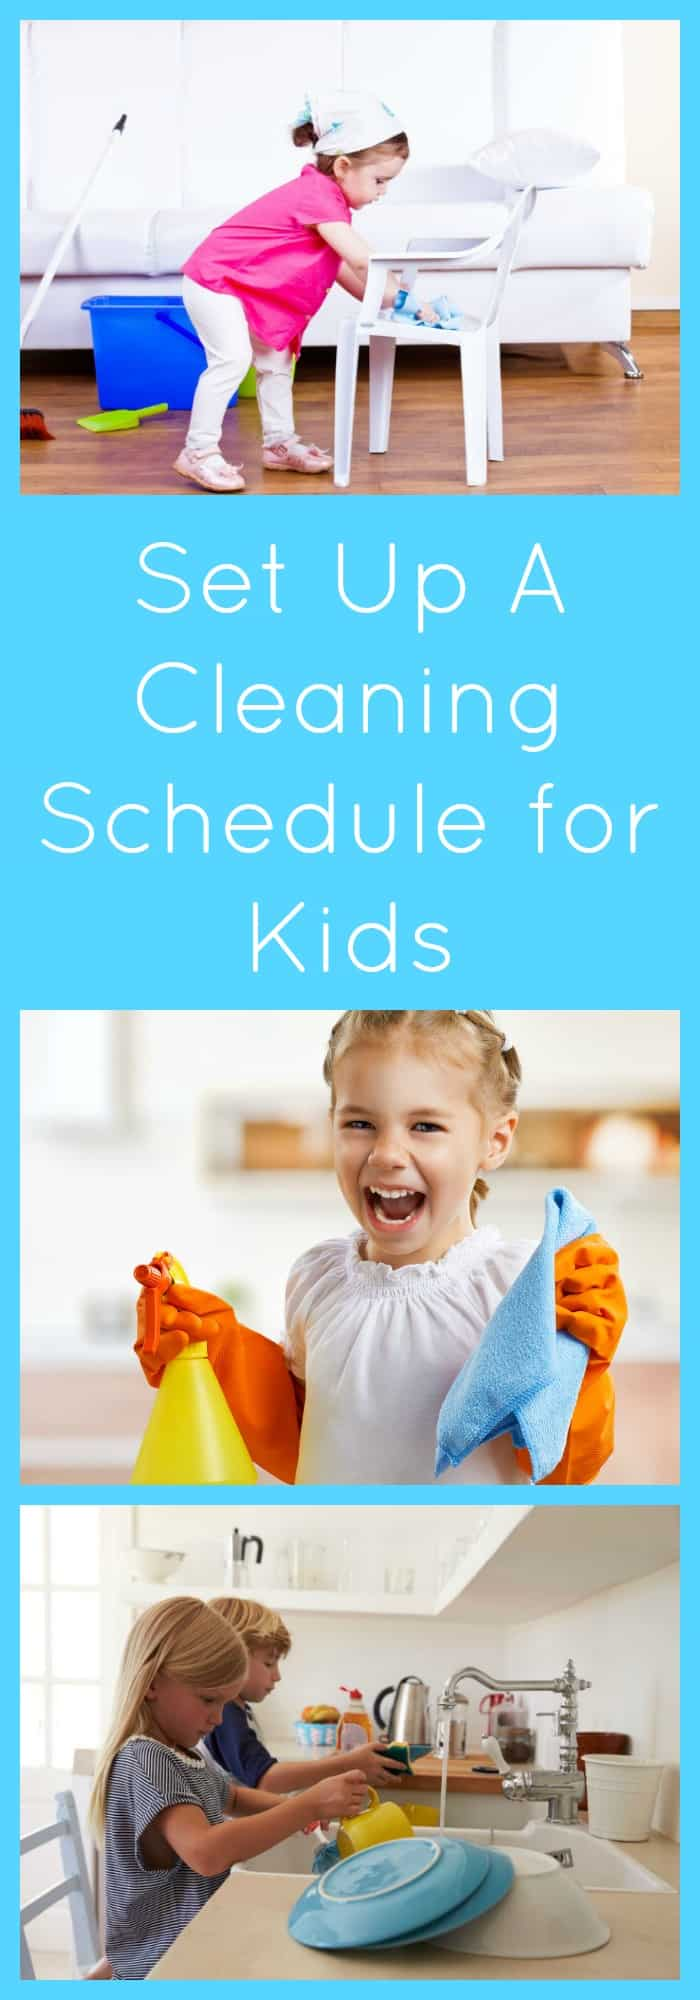 Kids--Set Up A Cleaning Schedule for Kids--The Organized Mom